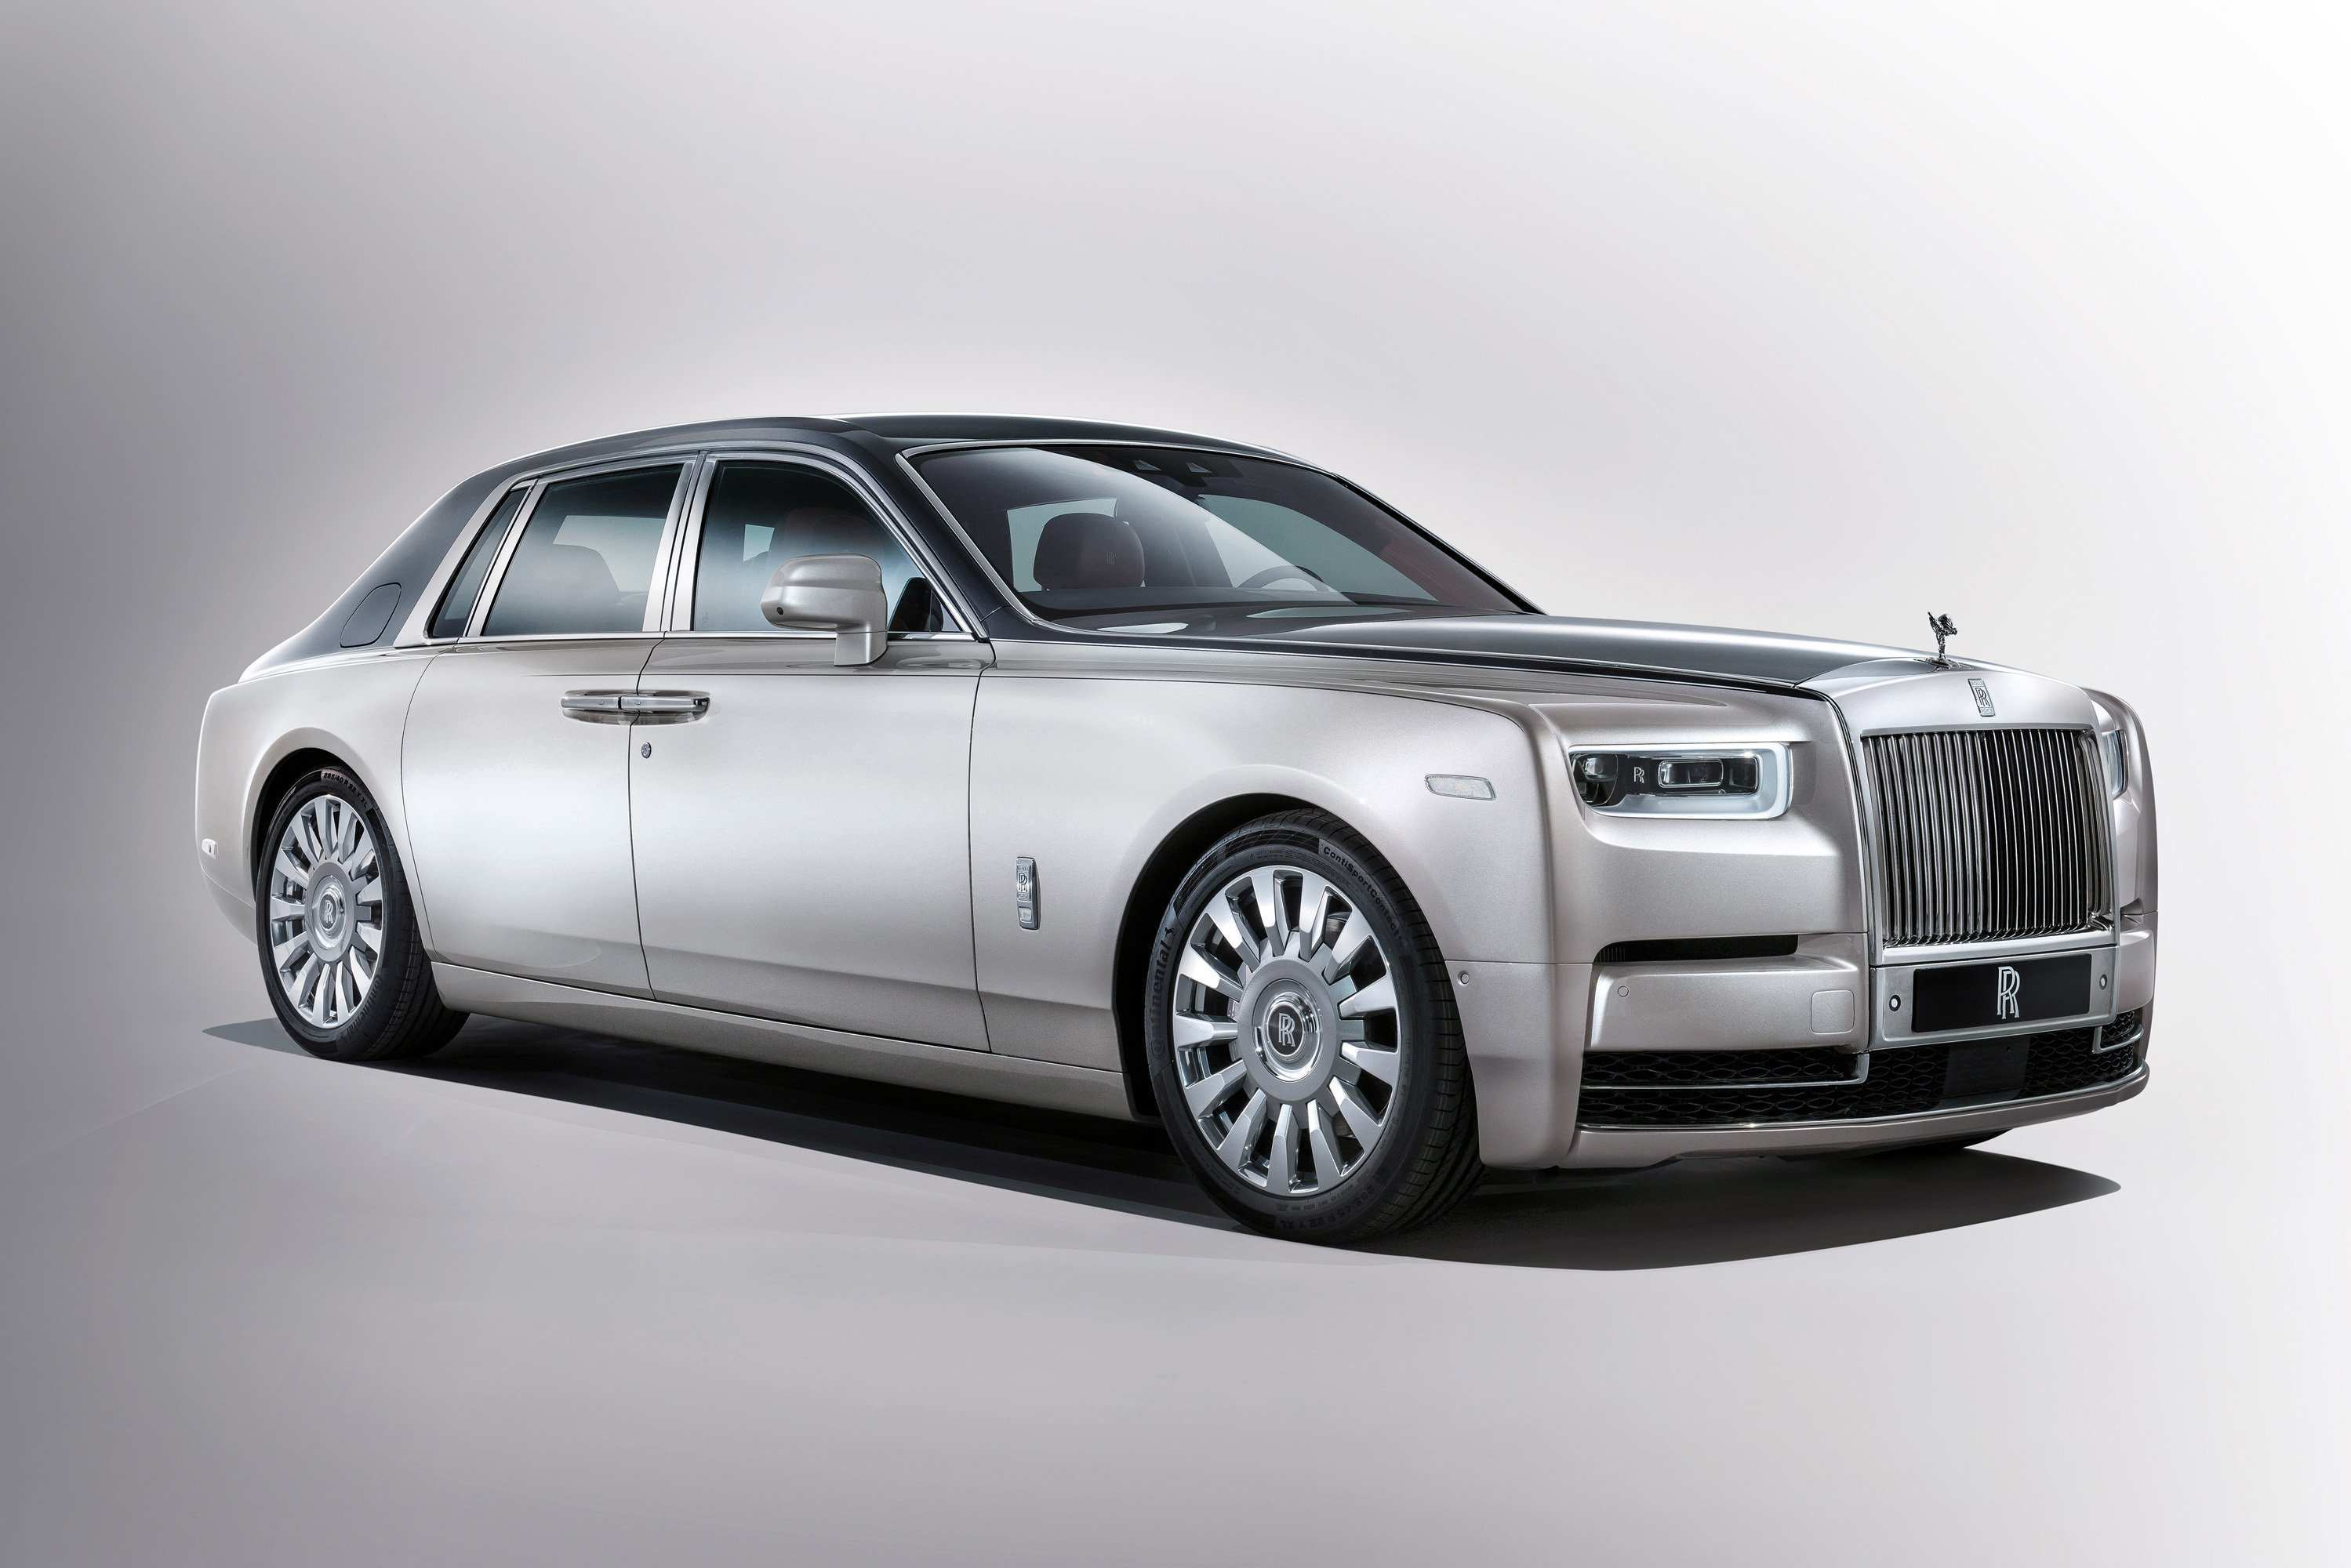 39 A 2020 Rolls Royce Phantoms Prices